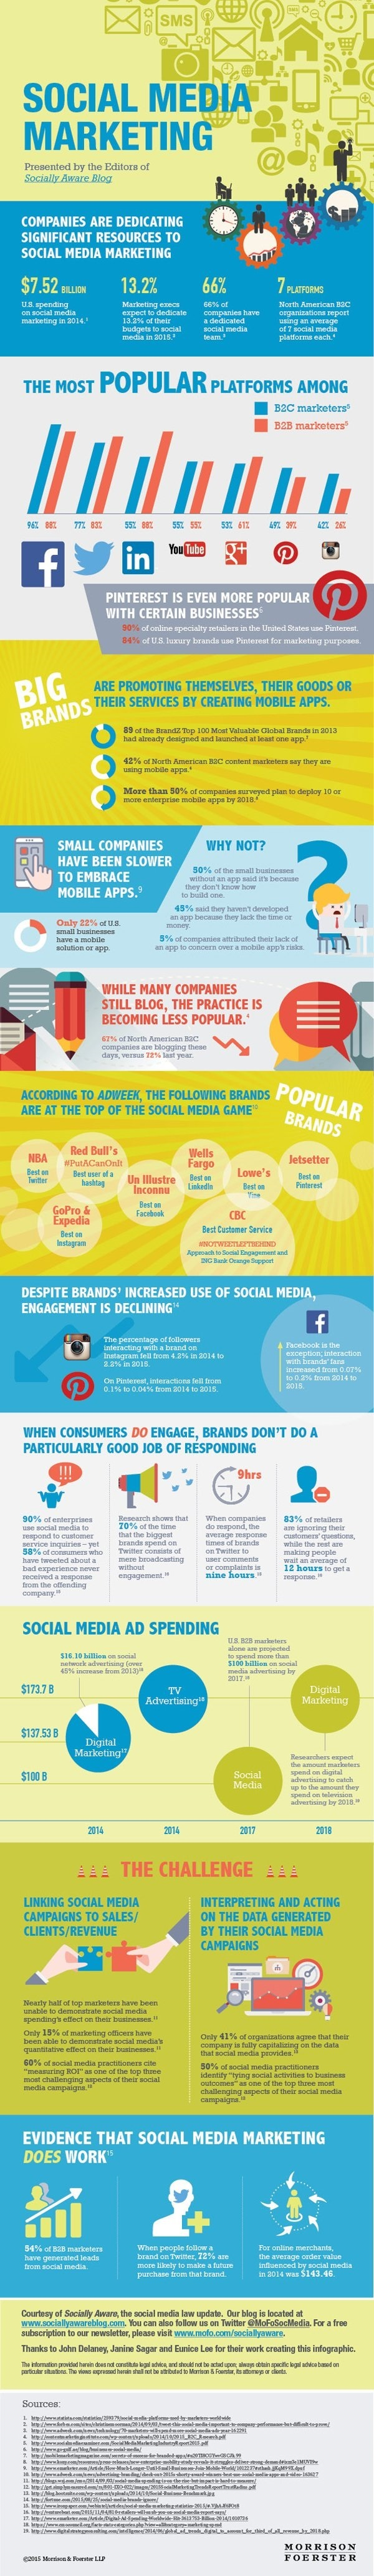 https://thenextscoop.com/the-state-of-social-media-marketing-infographic/